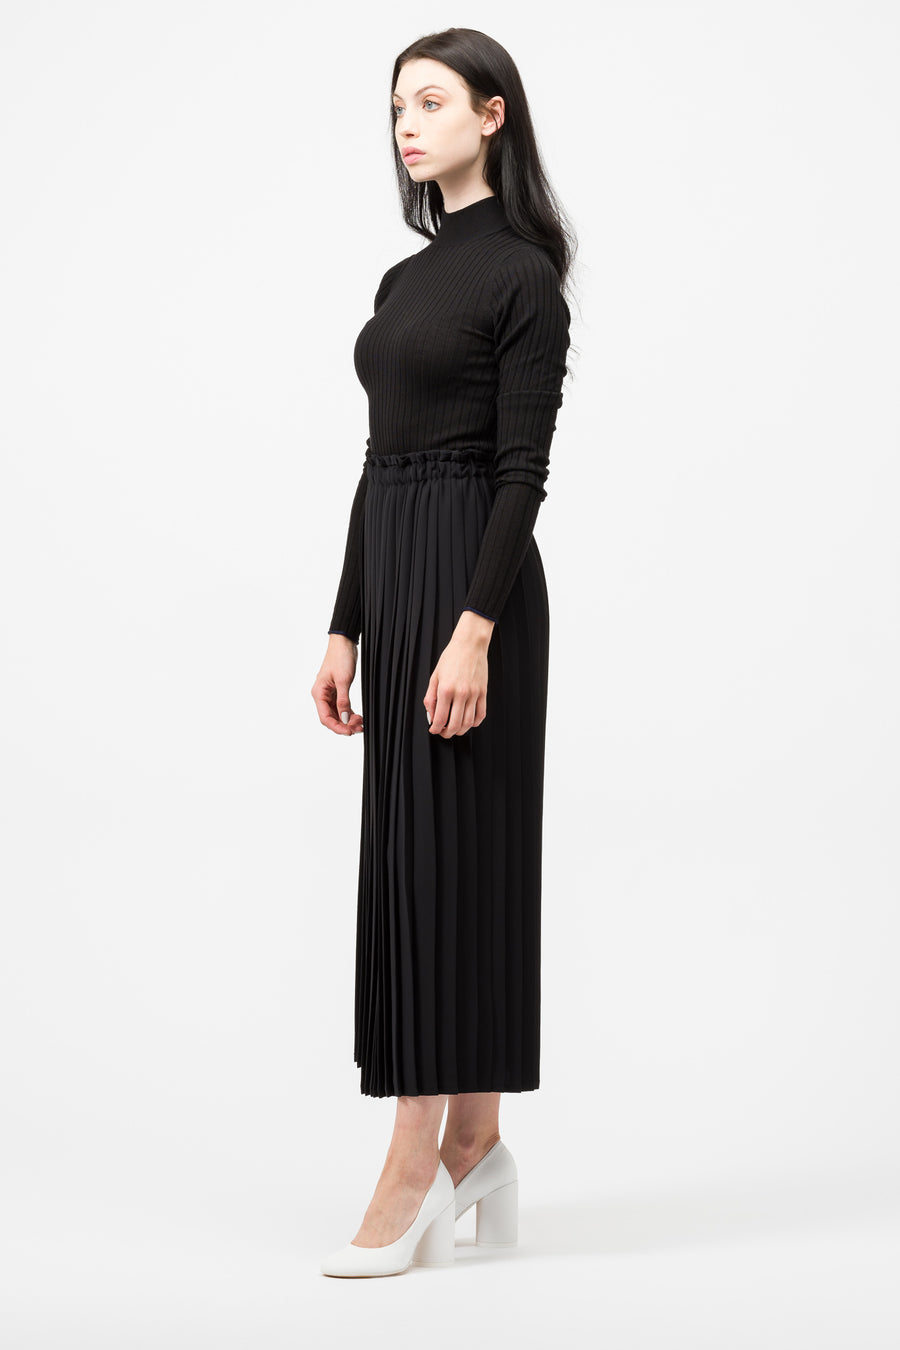 Maison Margiela MM6 Long Pleated Skirt in Black - Notre